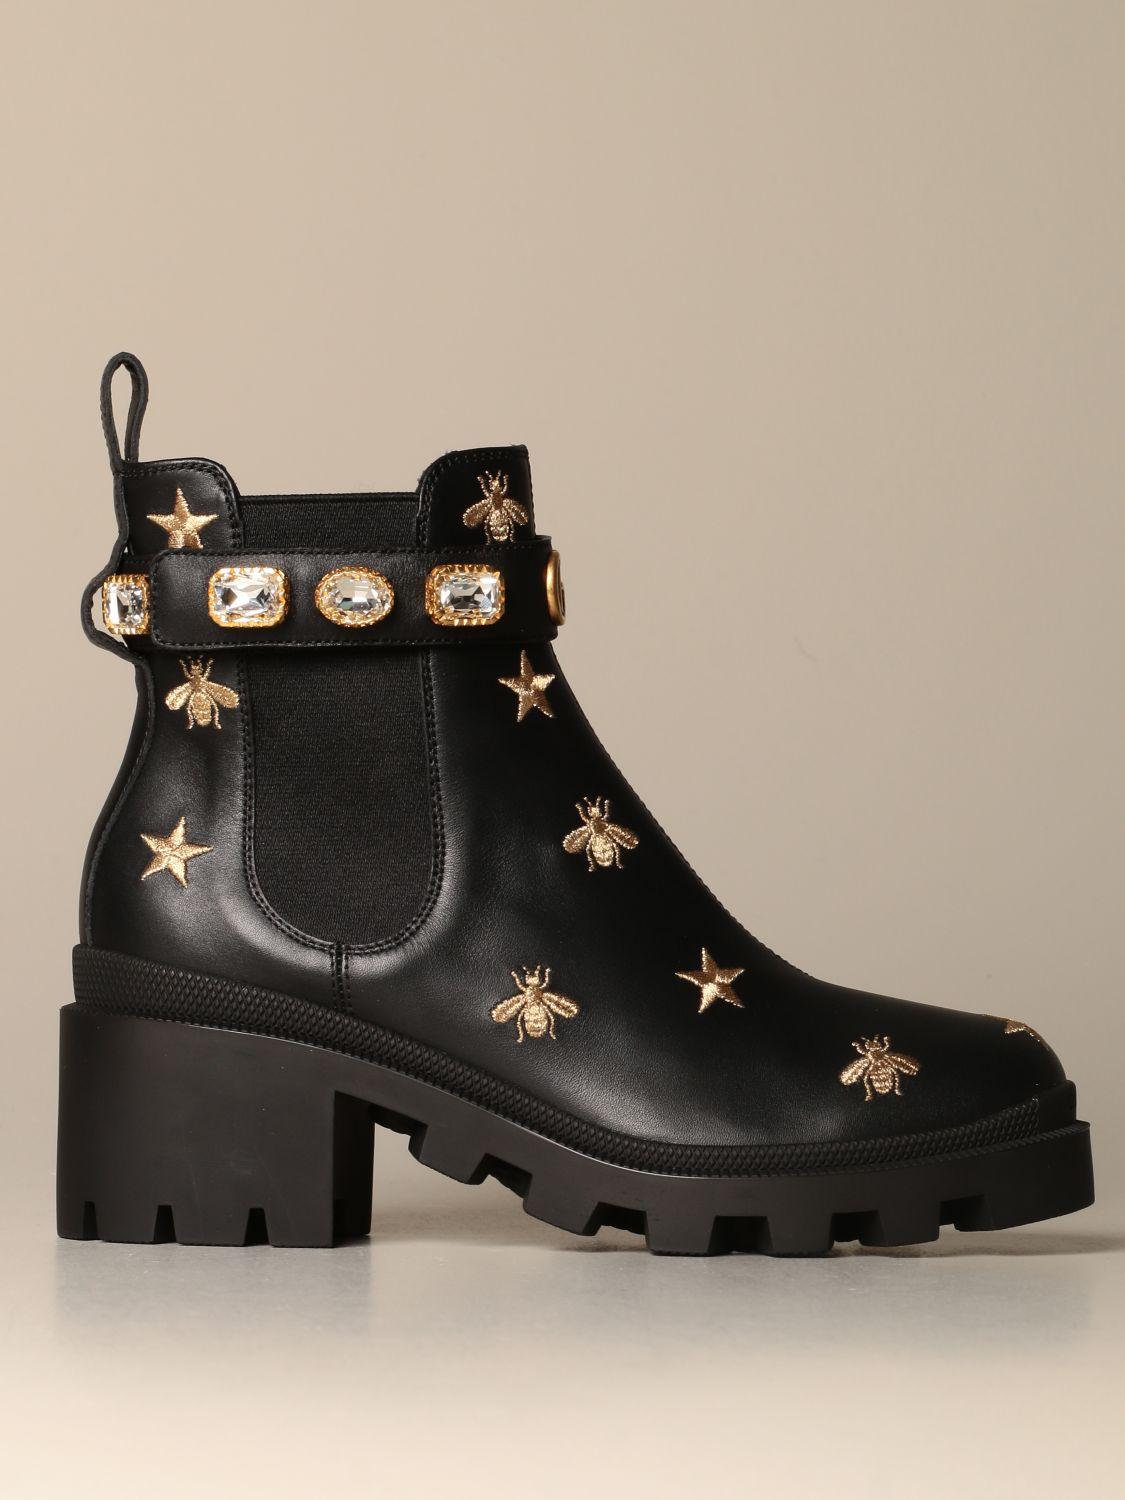 Gucci ankle boot in leather with bee